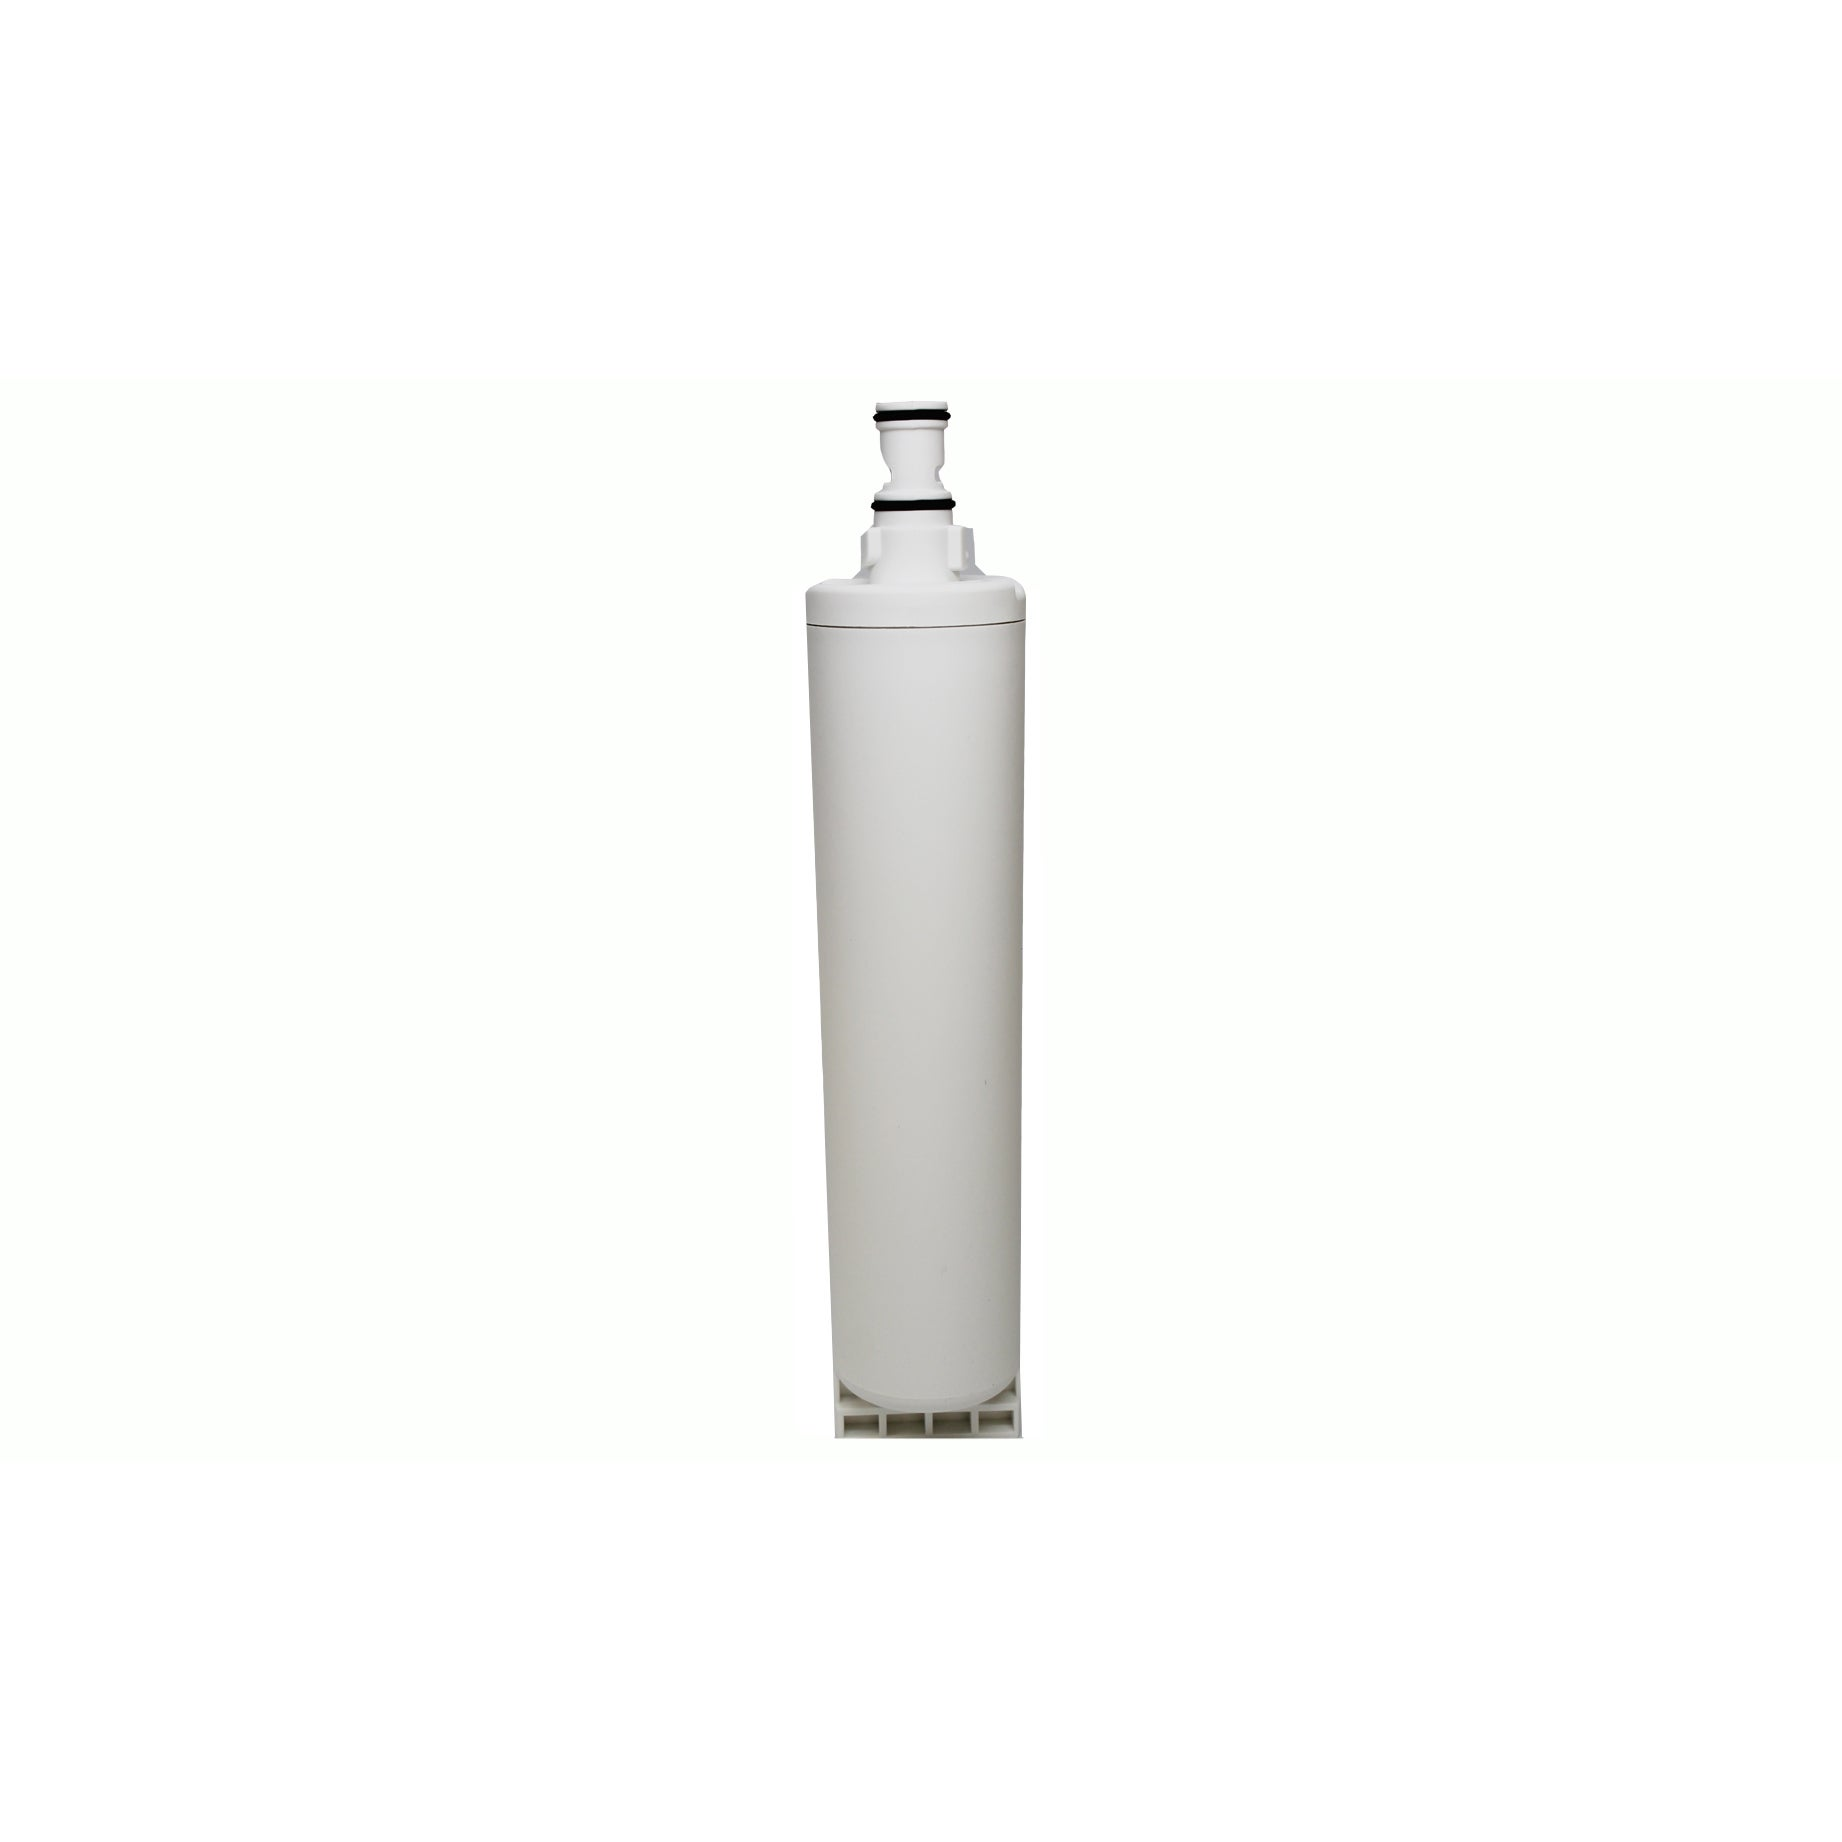 Crucial 3 Whirlpool 4396508 (RFC0500A) Refrigerator Water...